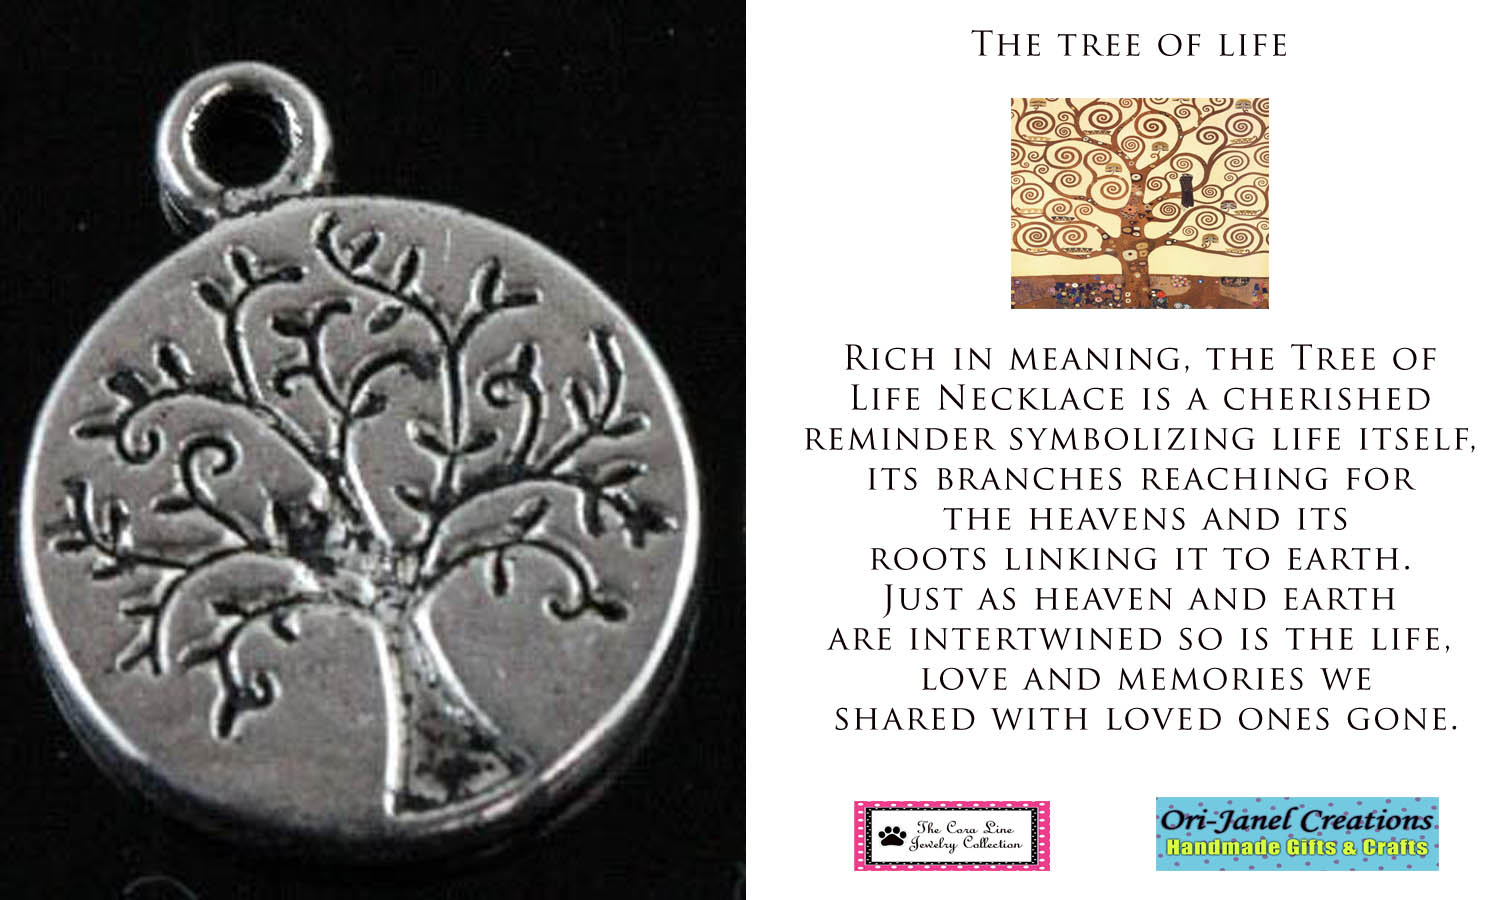 Ori janel creations new tree of life charms for What is the meaning of the tree of life jewelry